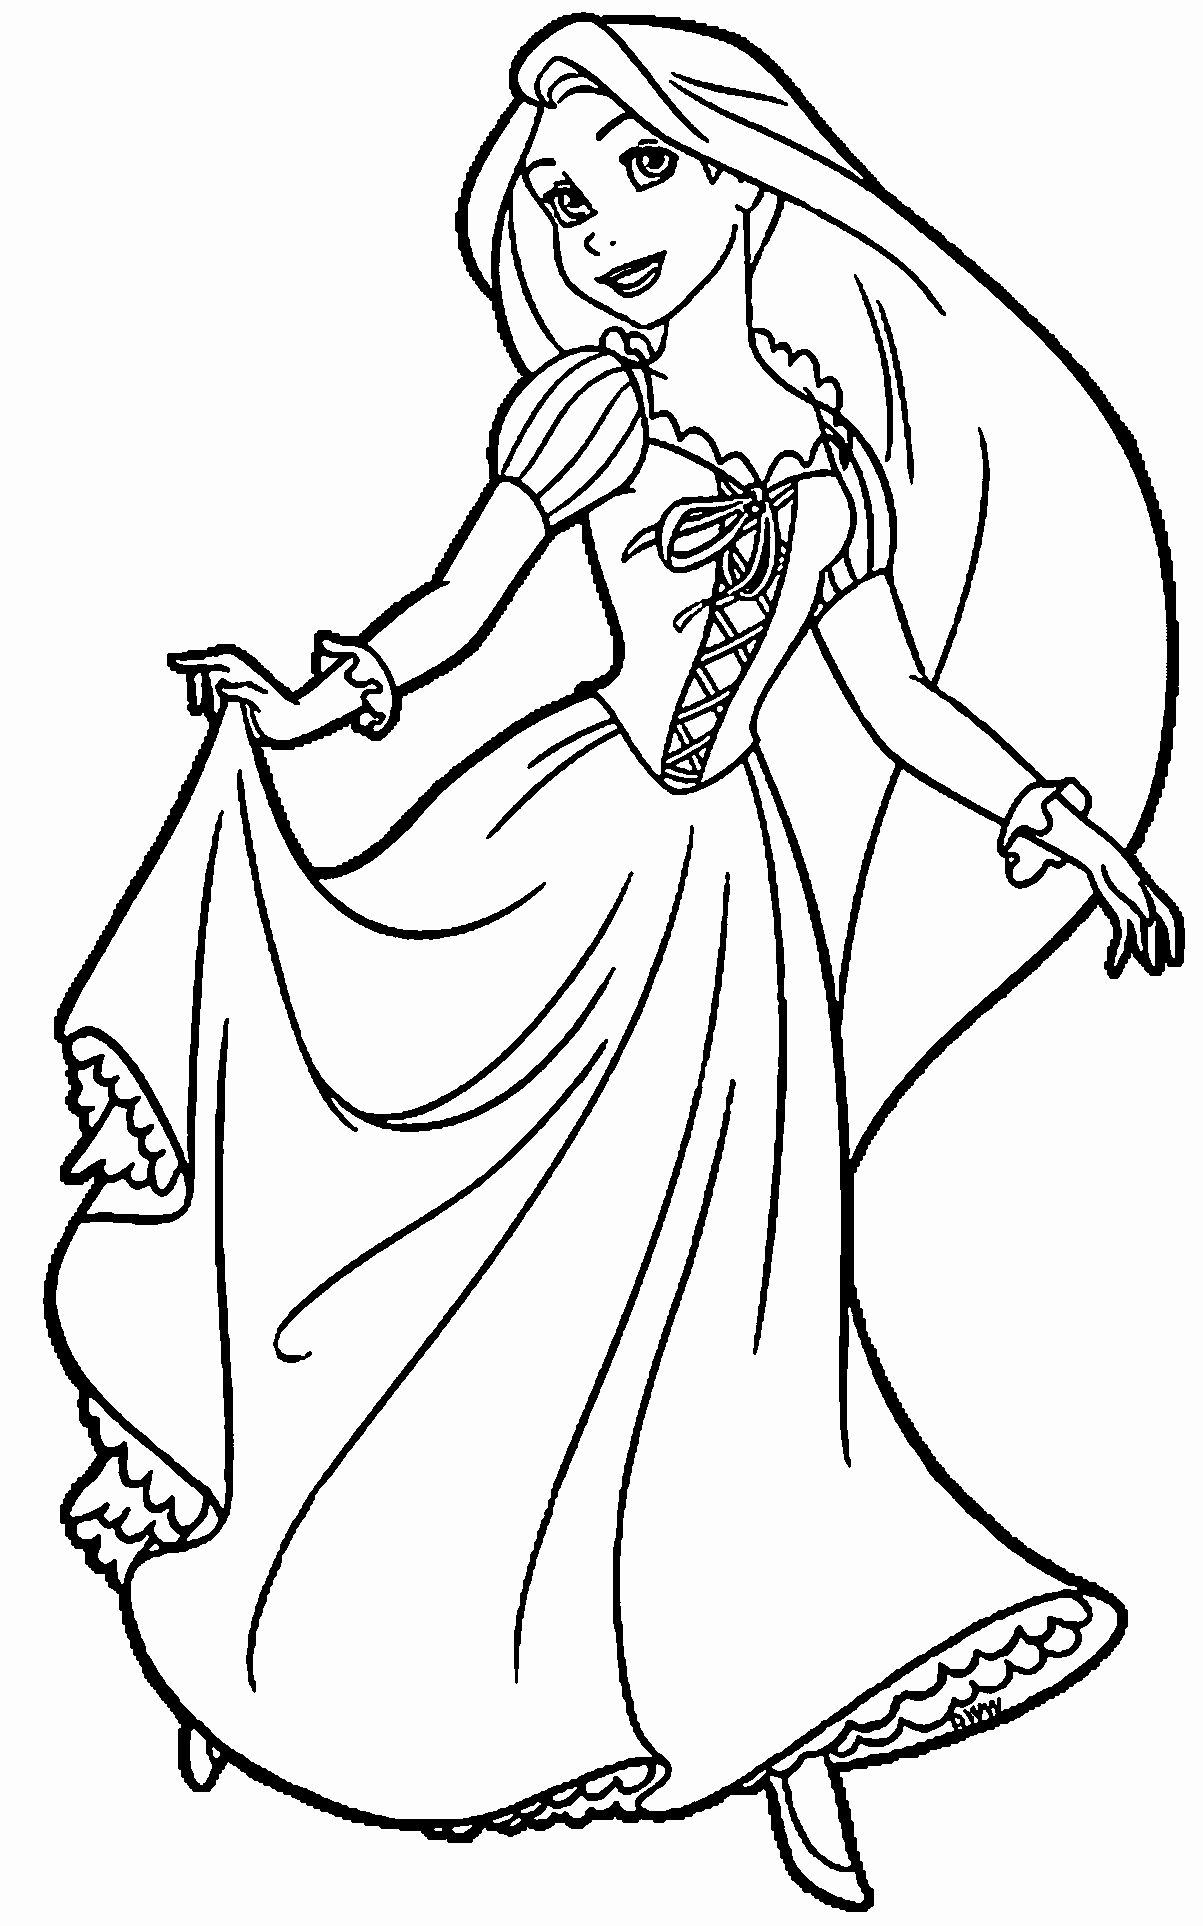 Rapunzel Printable Coloring Pages Lovely Rapunzel And Flynn Coloring Page Wecolor Disney Princess Coloring Pages Tangled Coloring Pages Princess Coloring Pages